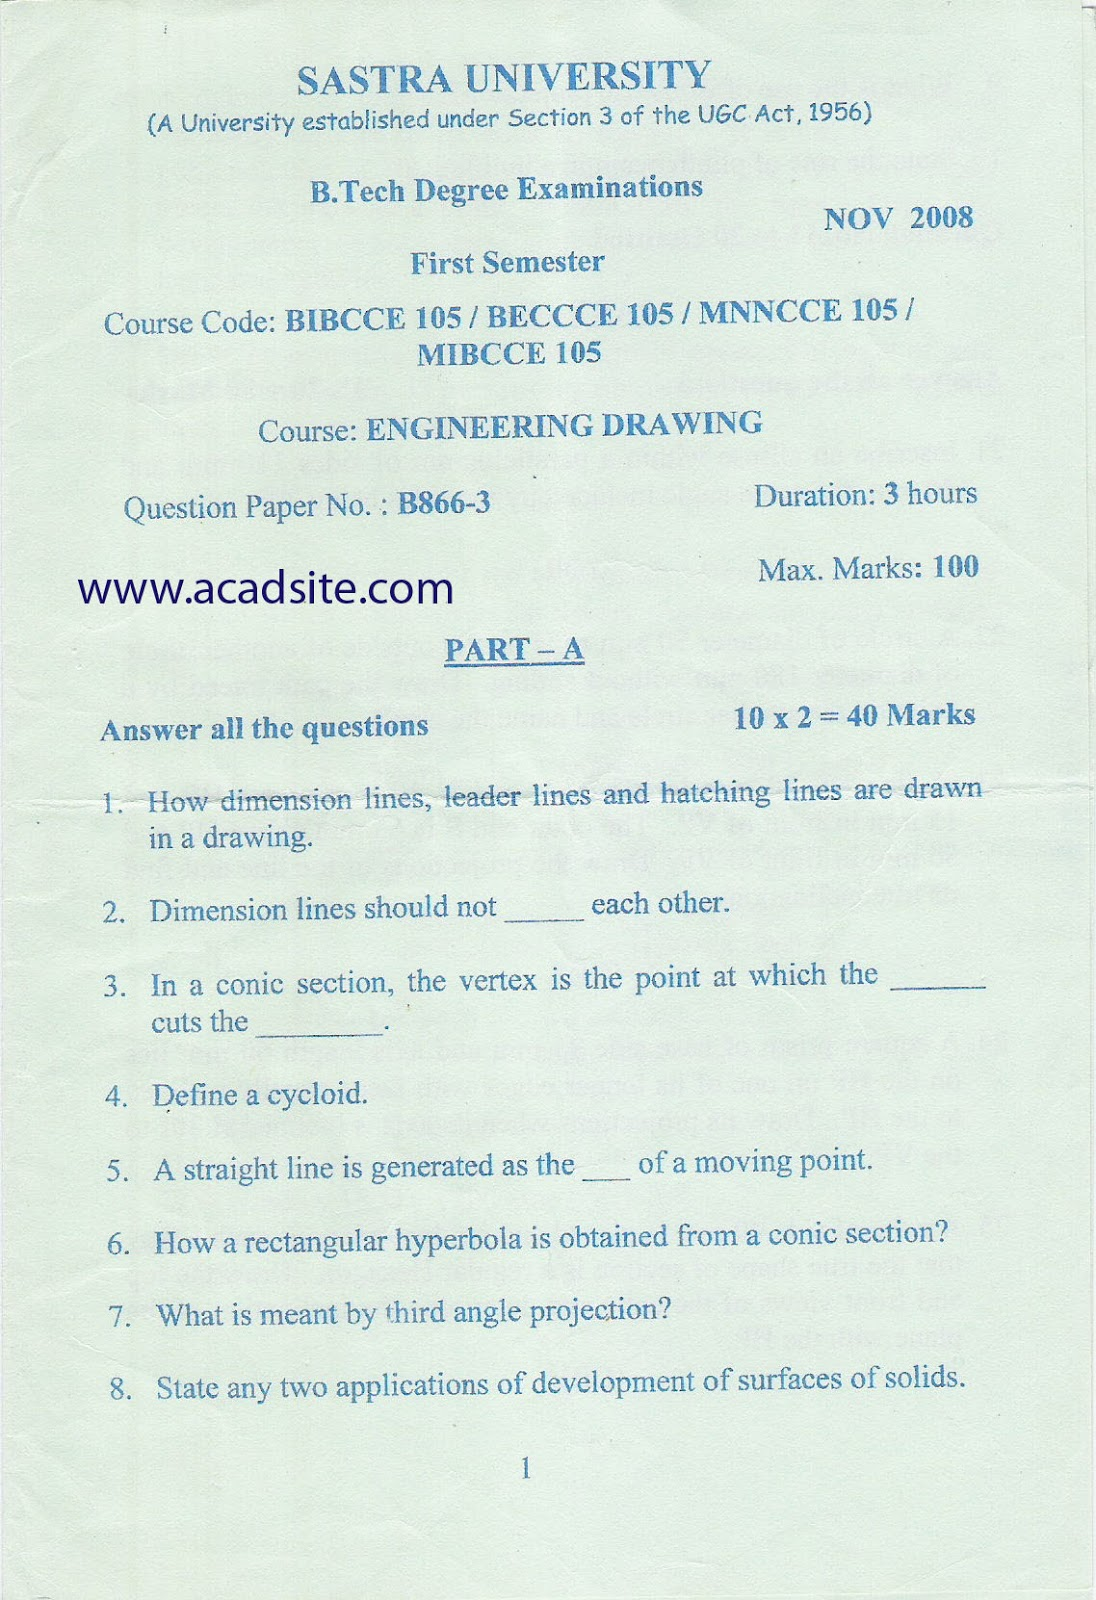 Sastra university previous year ed question paper fandeluxe Images